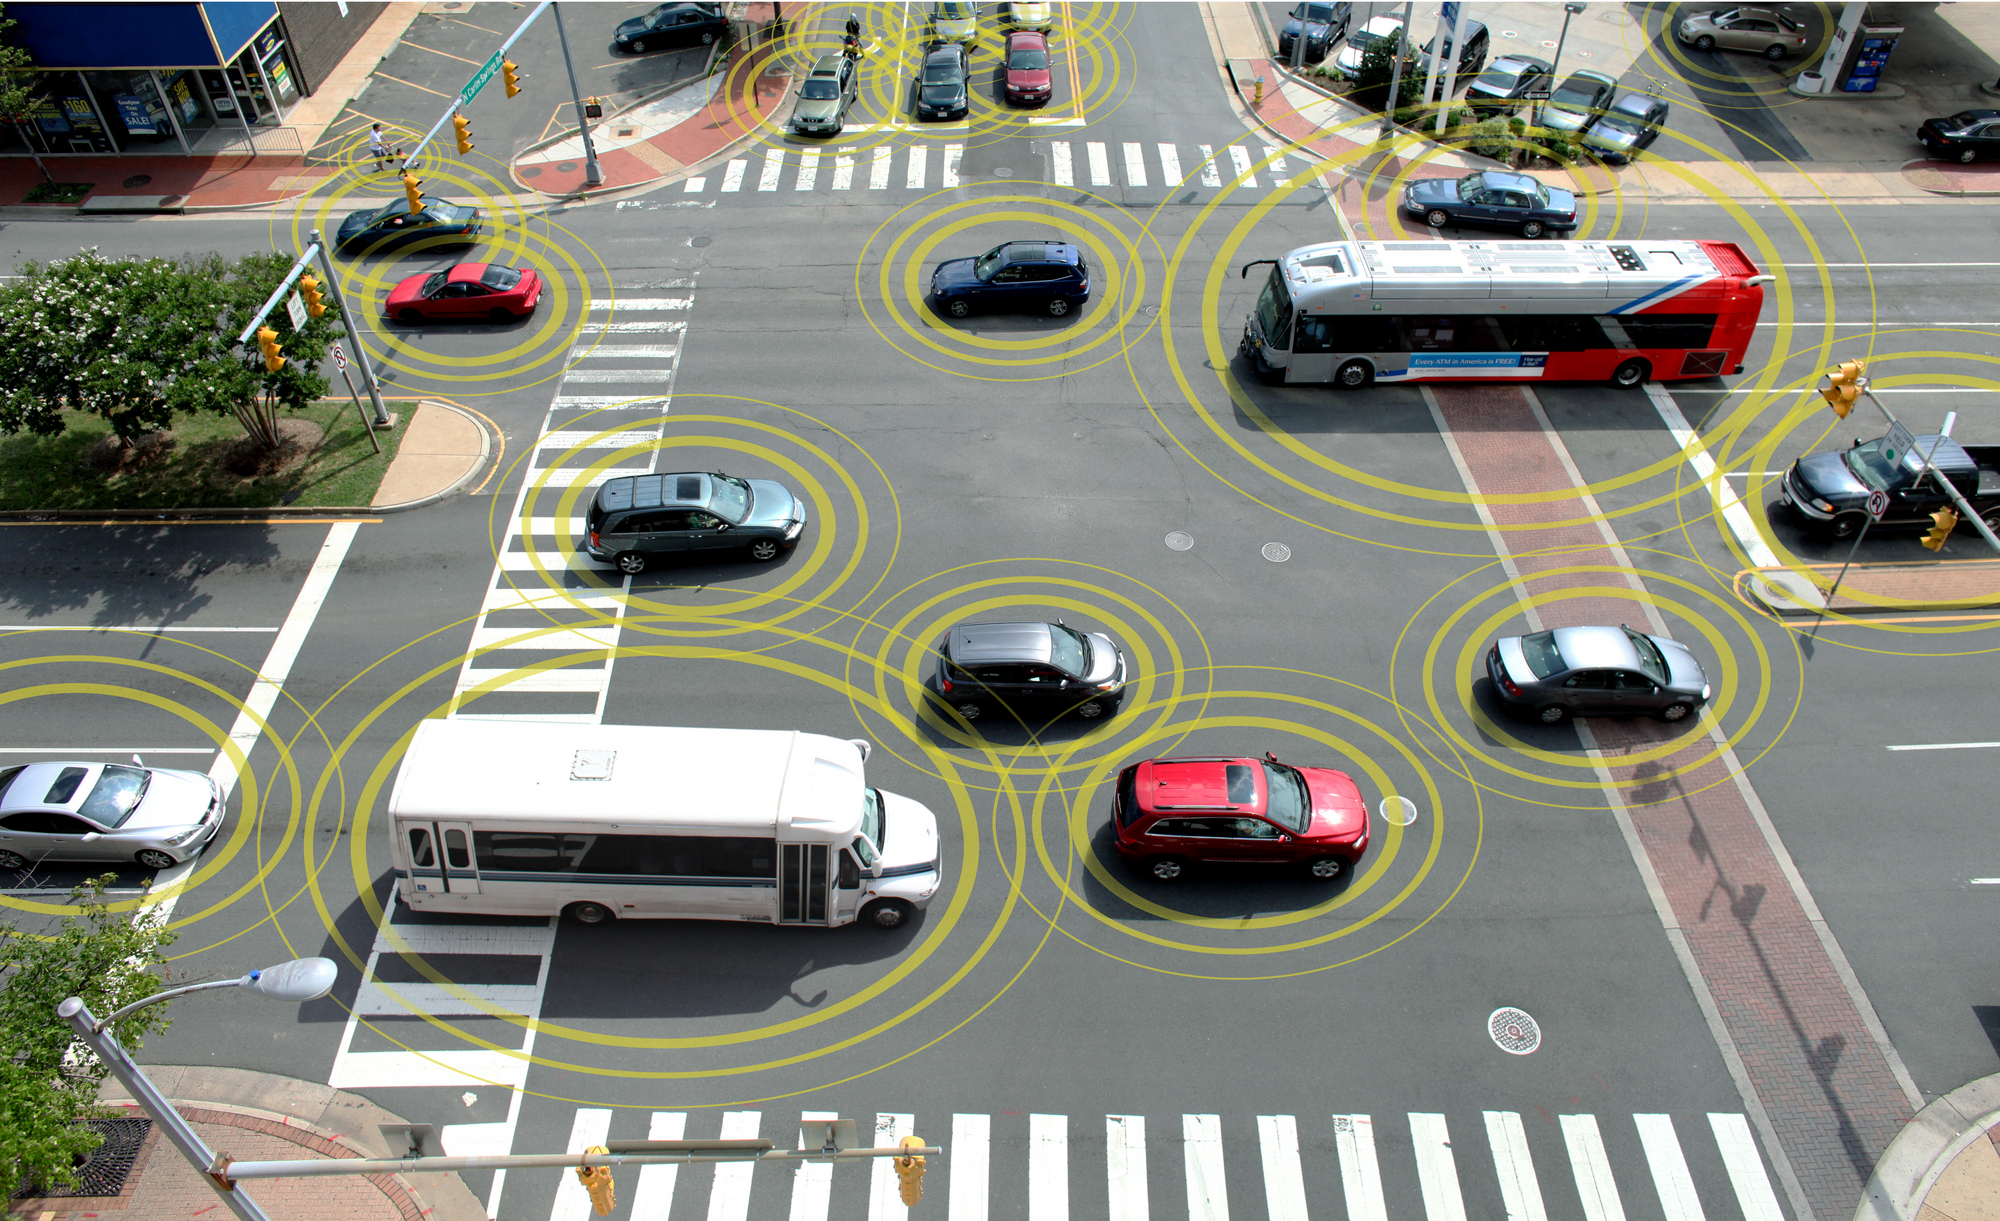 connected-cars-in-traffic